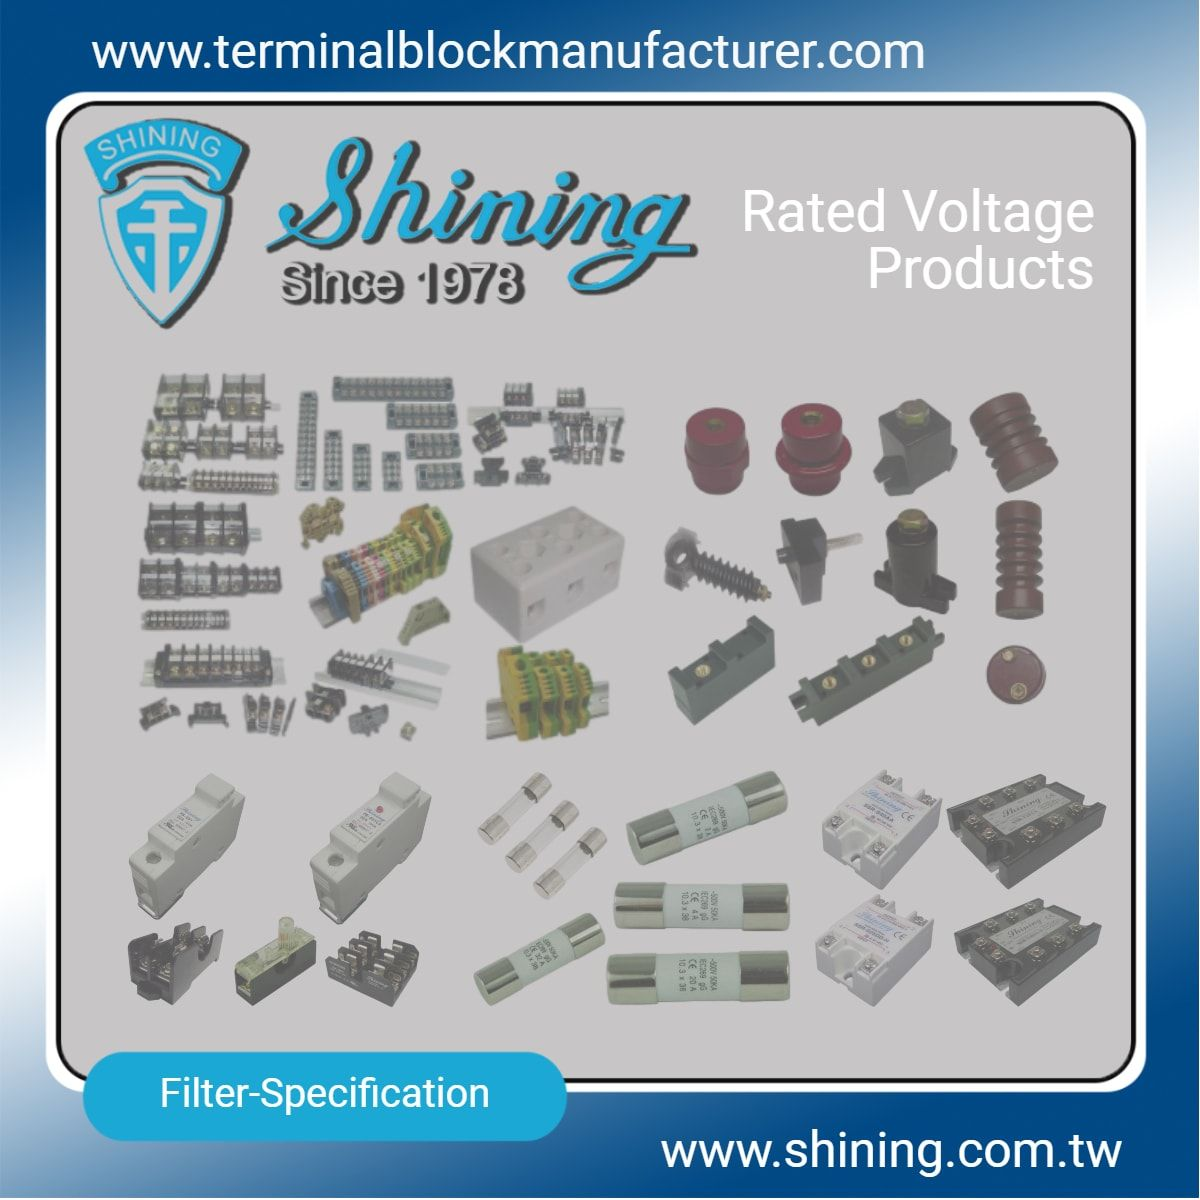 Rated Voltage Products